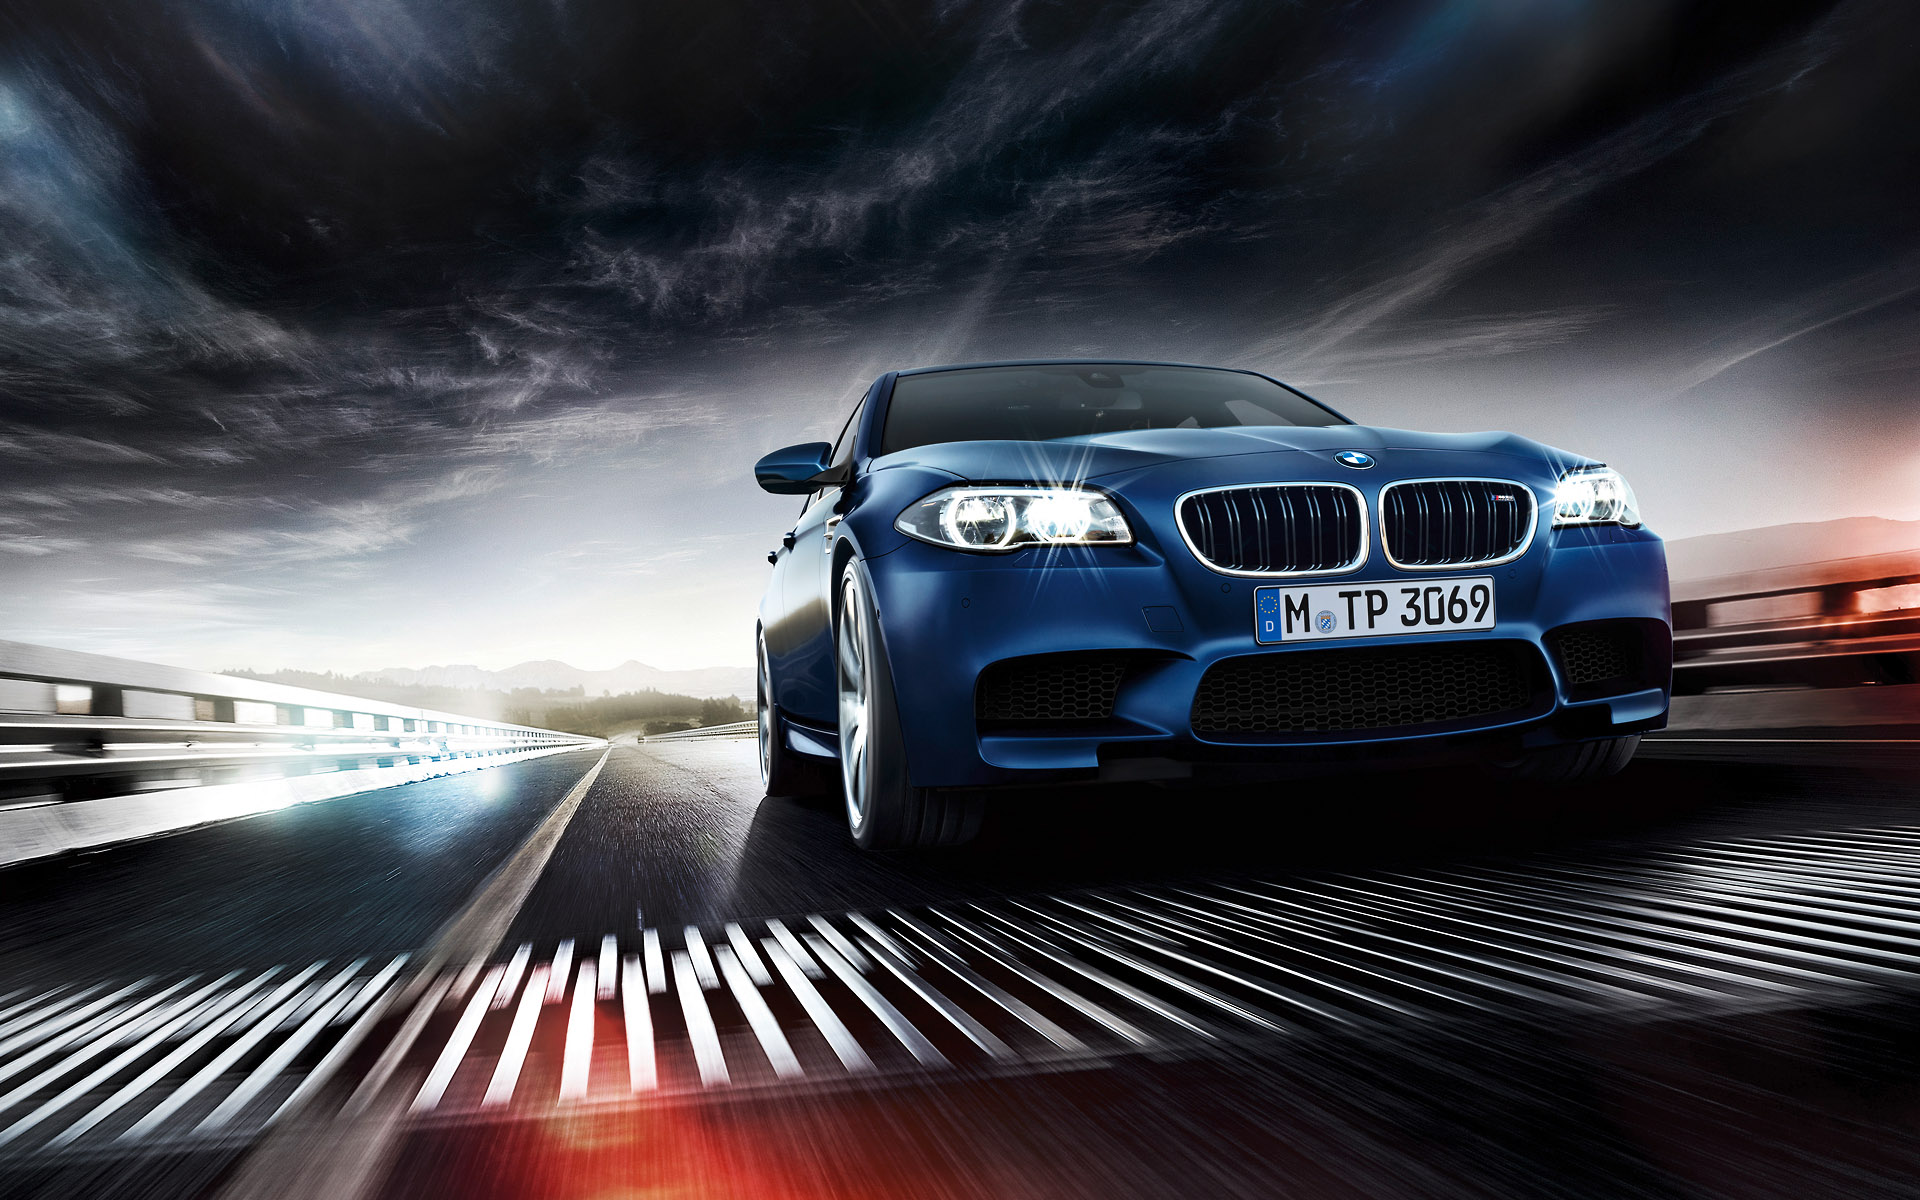 Wallpapers: BMW M5 Facelift